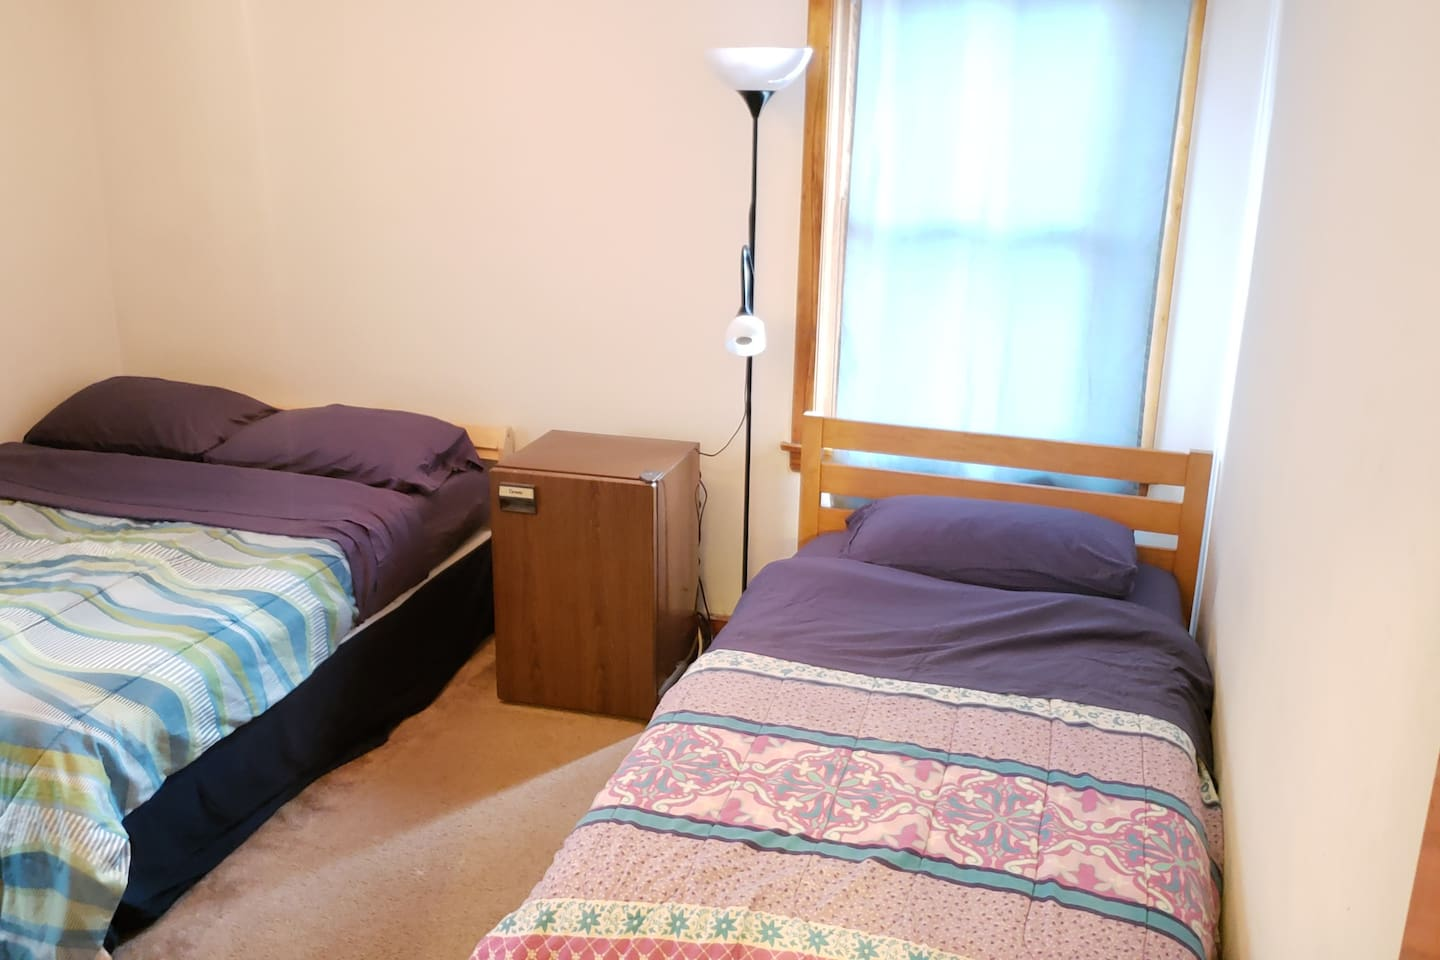 The room contains a full bed and a twin bed.